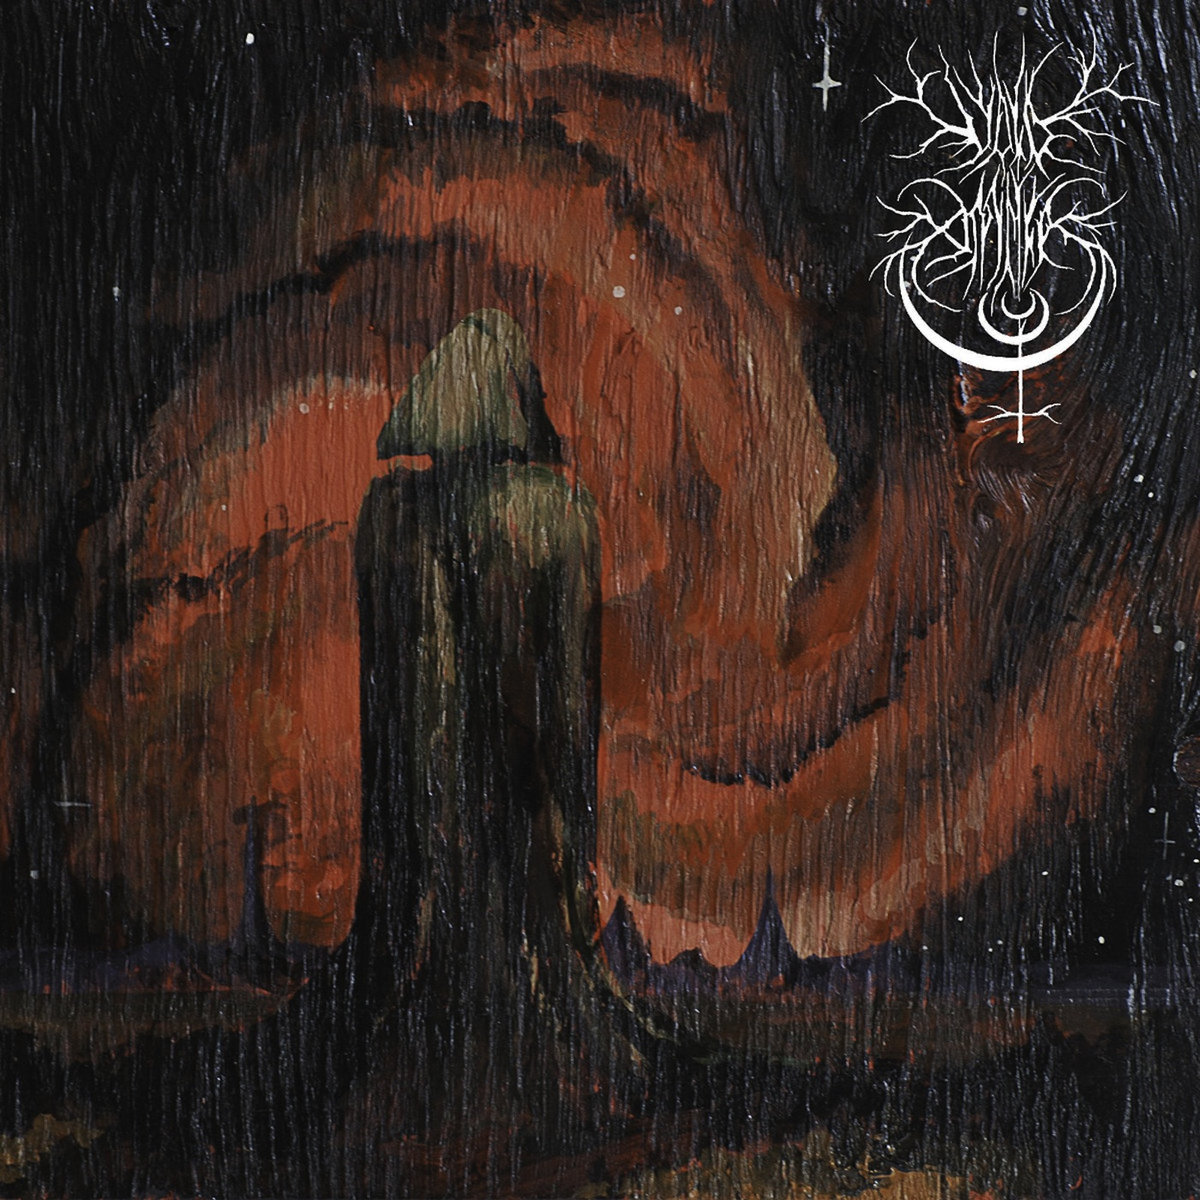 VOID OMNIA S/t – Vinyl LP (black)